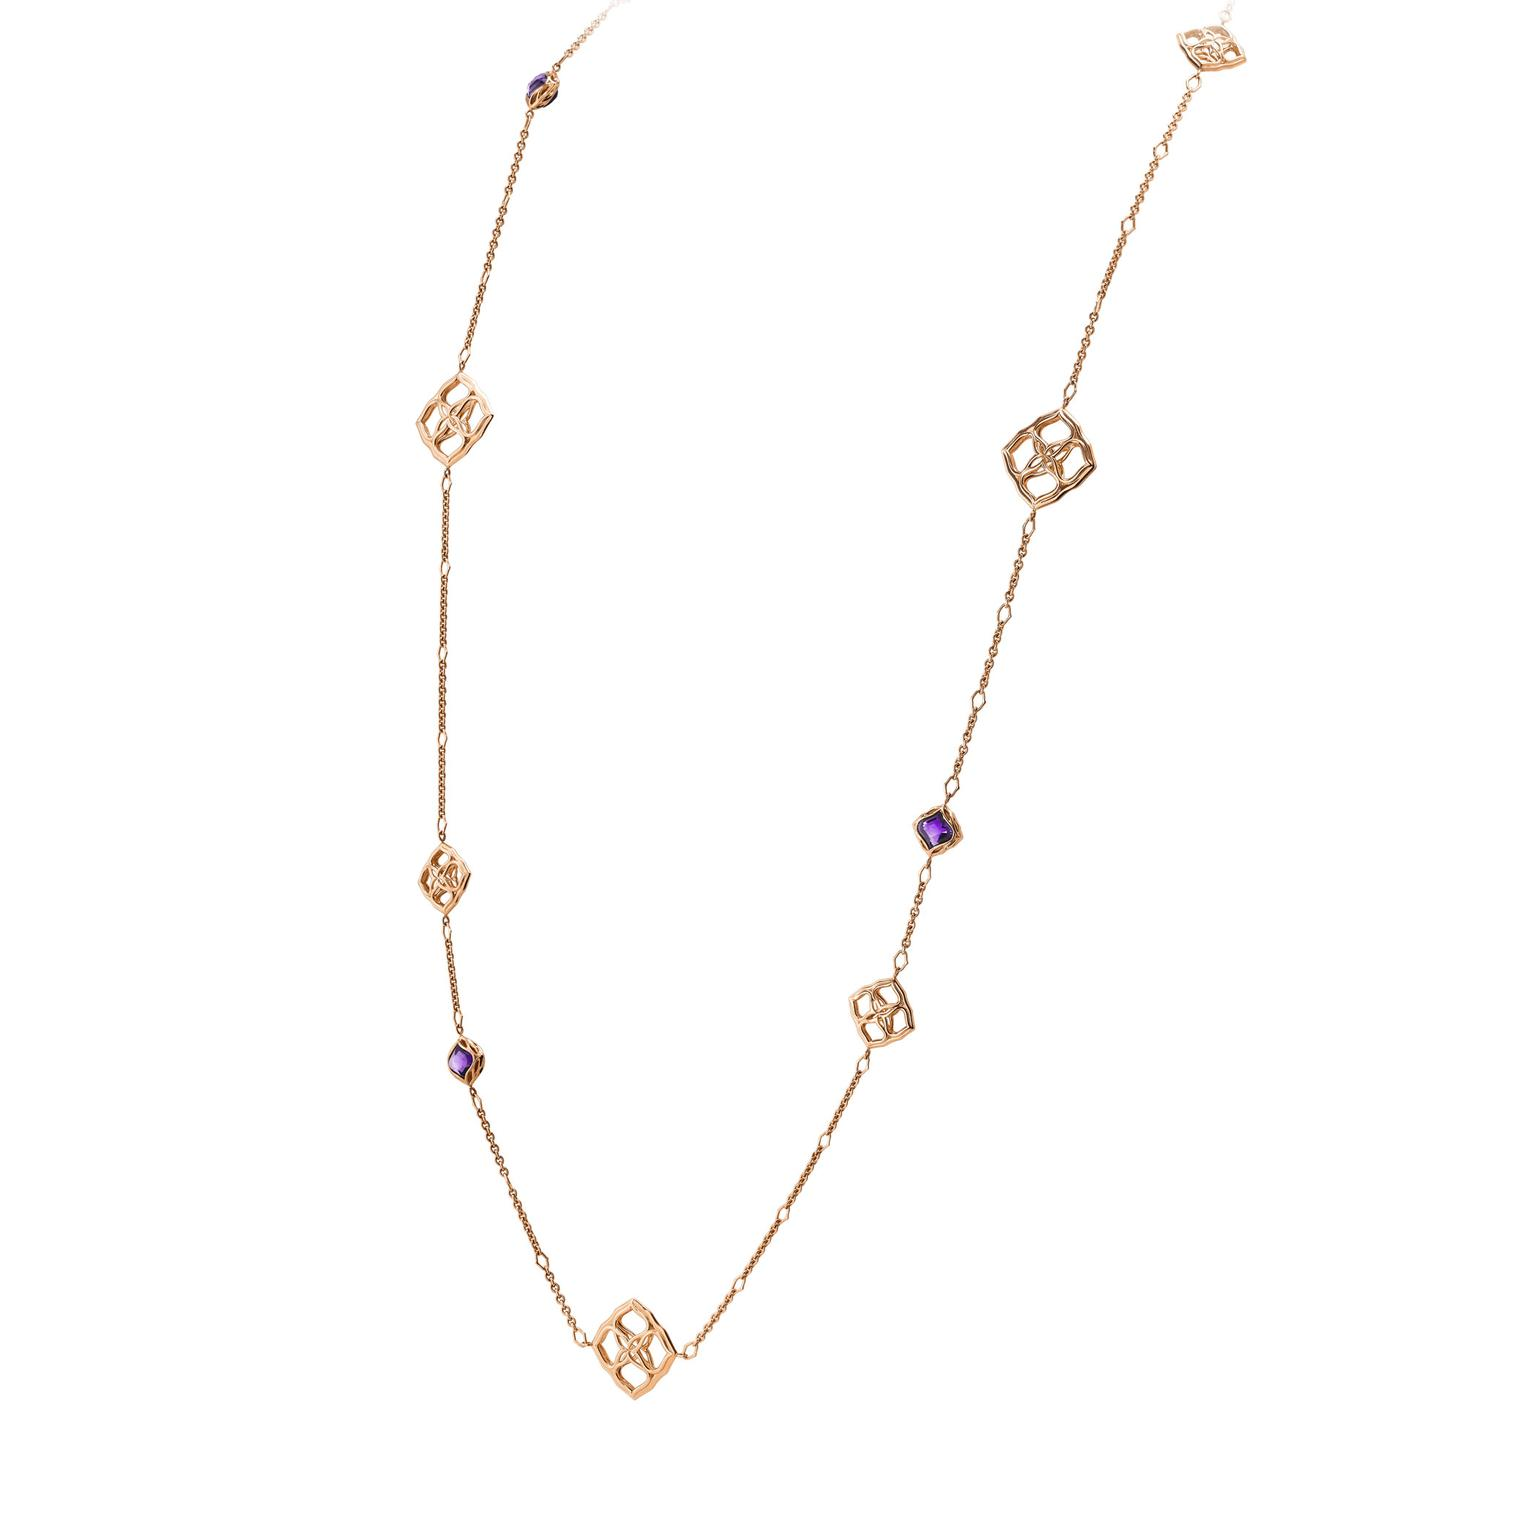 Chopard Imperiale sautoir necklace_zoom